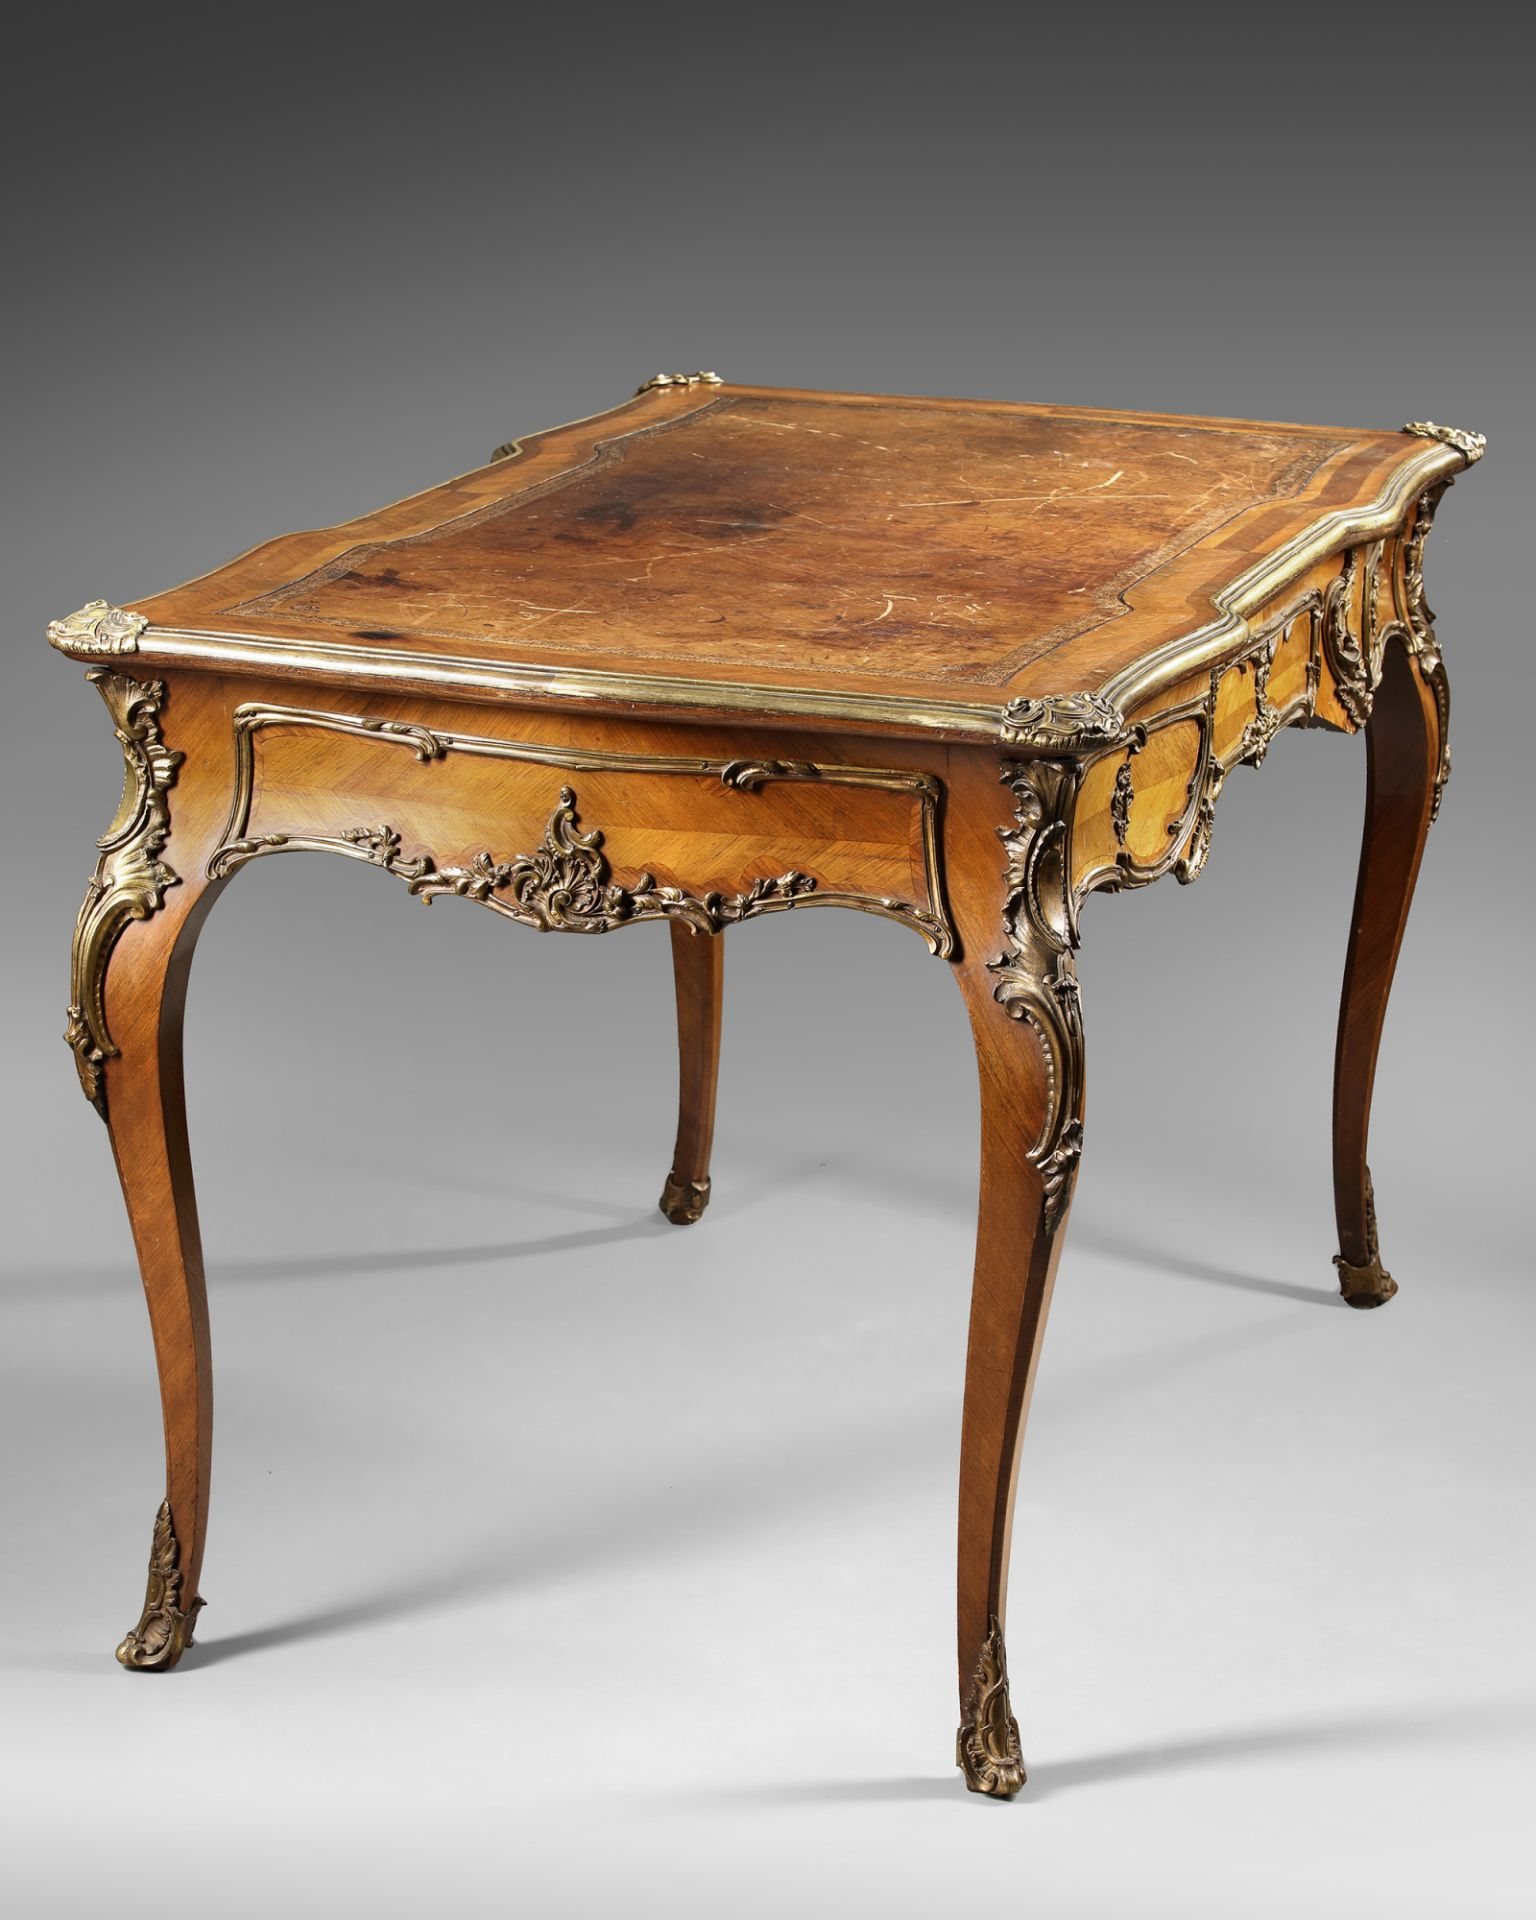 A FRENCH LOUIS XV DESK, 19TH CENTURY - Image 4 of 5